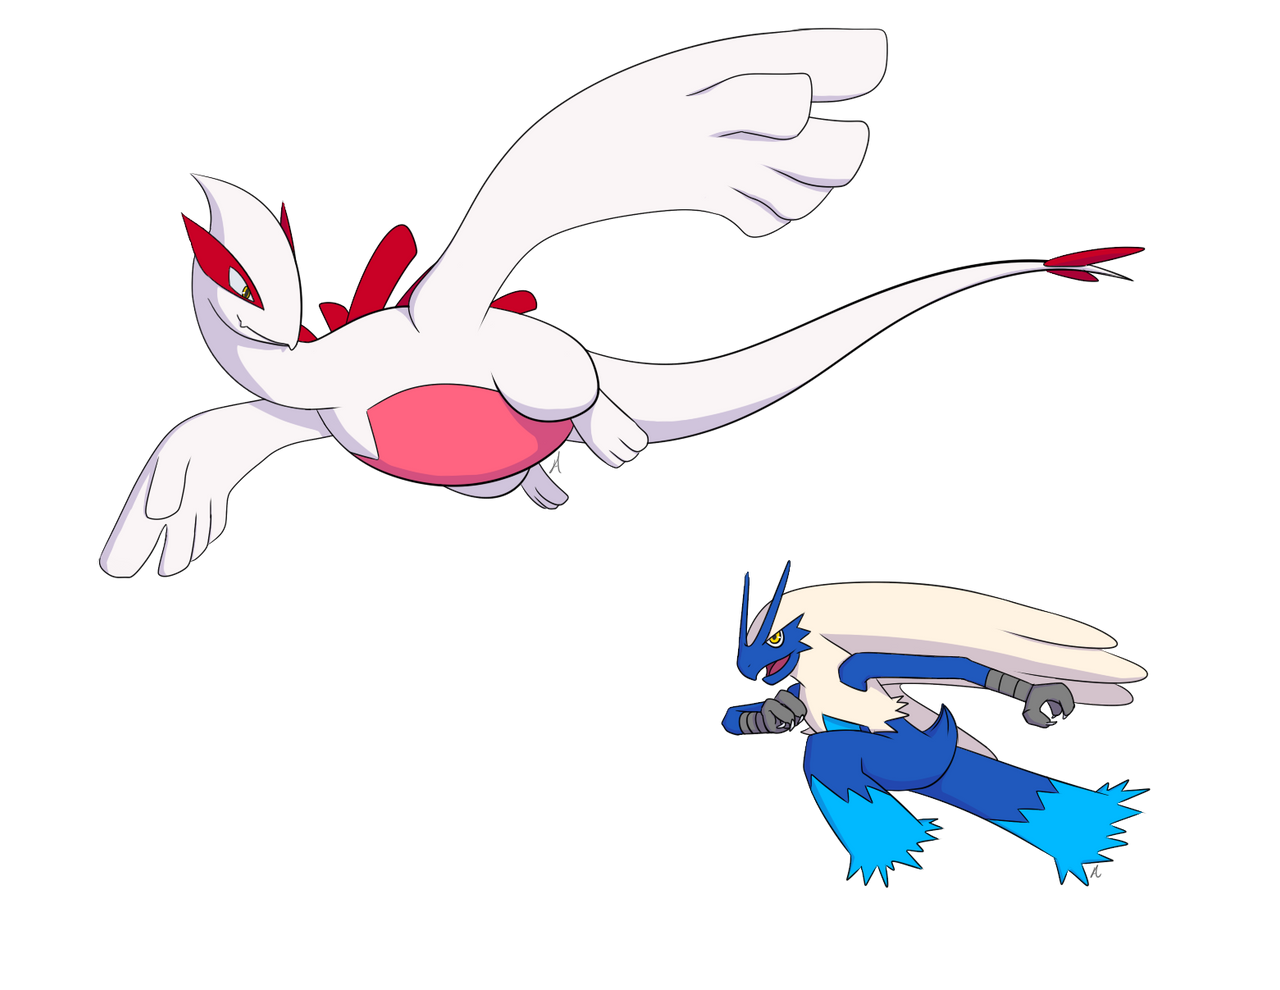 Shiny Lugia and Blue Blaziken by Aeroire on DeviantArt